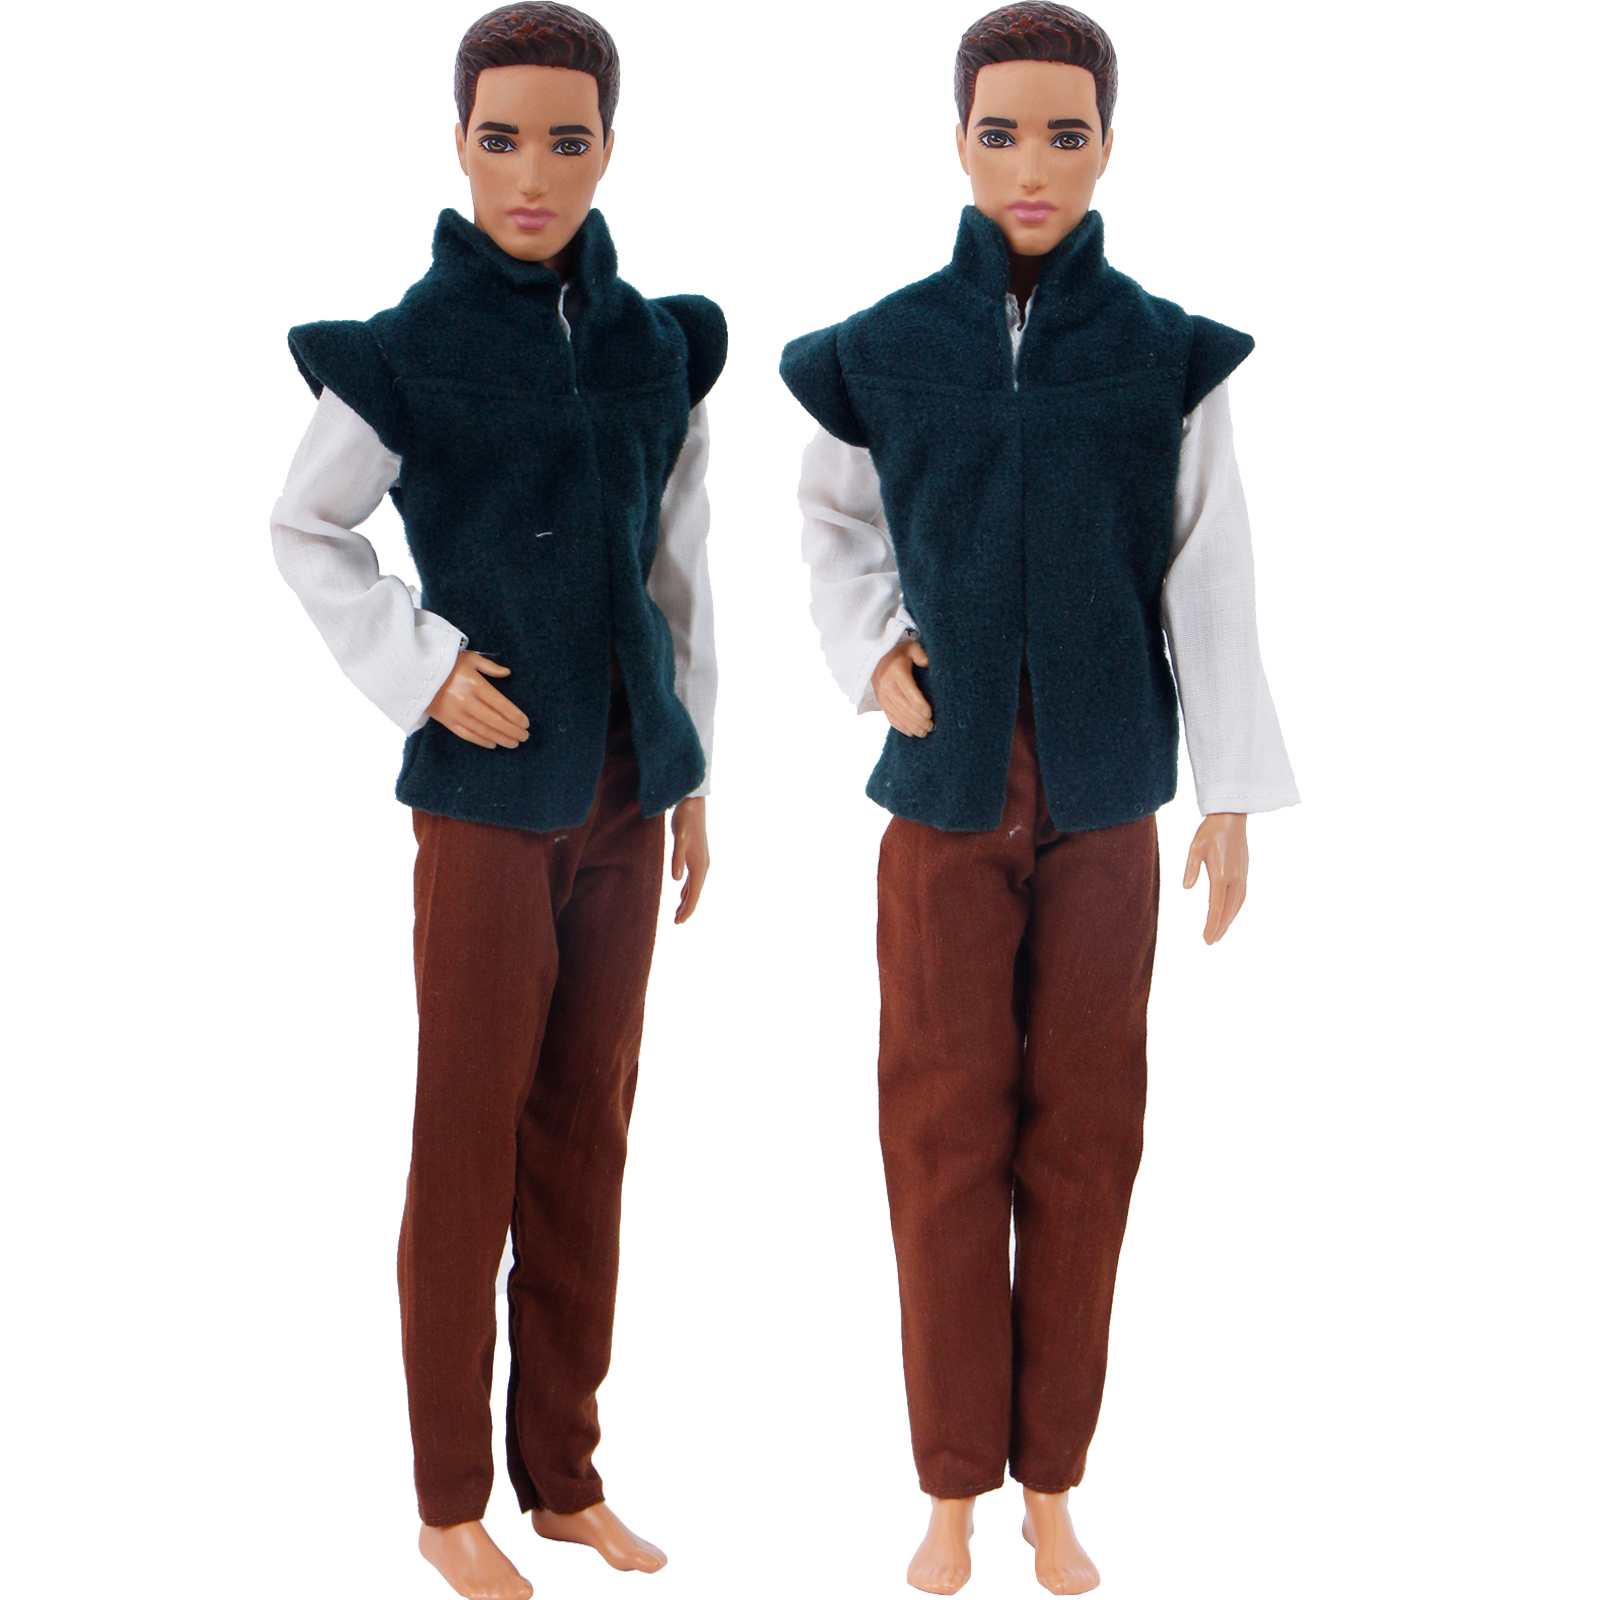 Handmade Mens Doll Outfit Fairy Tale Prince Uniform Party Wear Blouse Pants Clothes for Barbie Doll Friend Ken Doll AccessoriesHandmade Mens Doll Outfit Fairy Tale Prince Uniform Party Wear Blouse Pants Clothes for Barbie Doll Friend Ken Doll Accessories